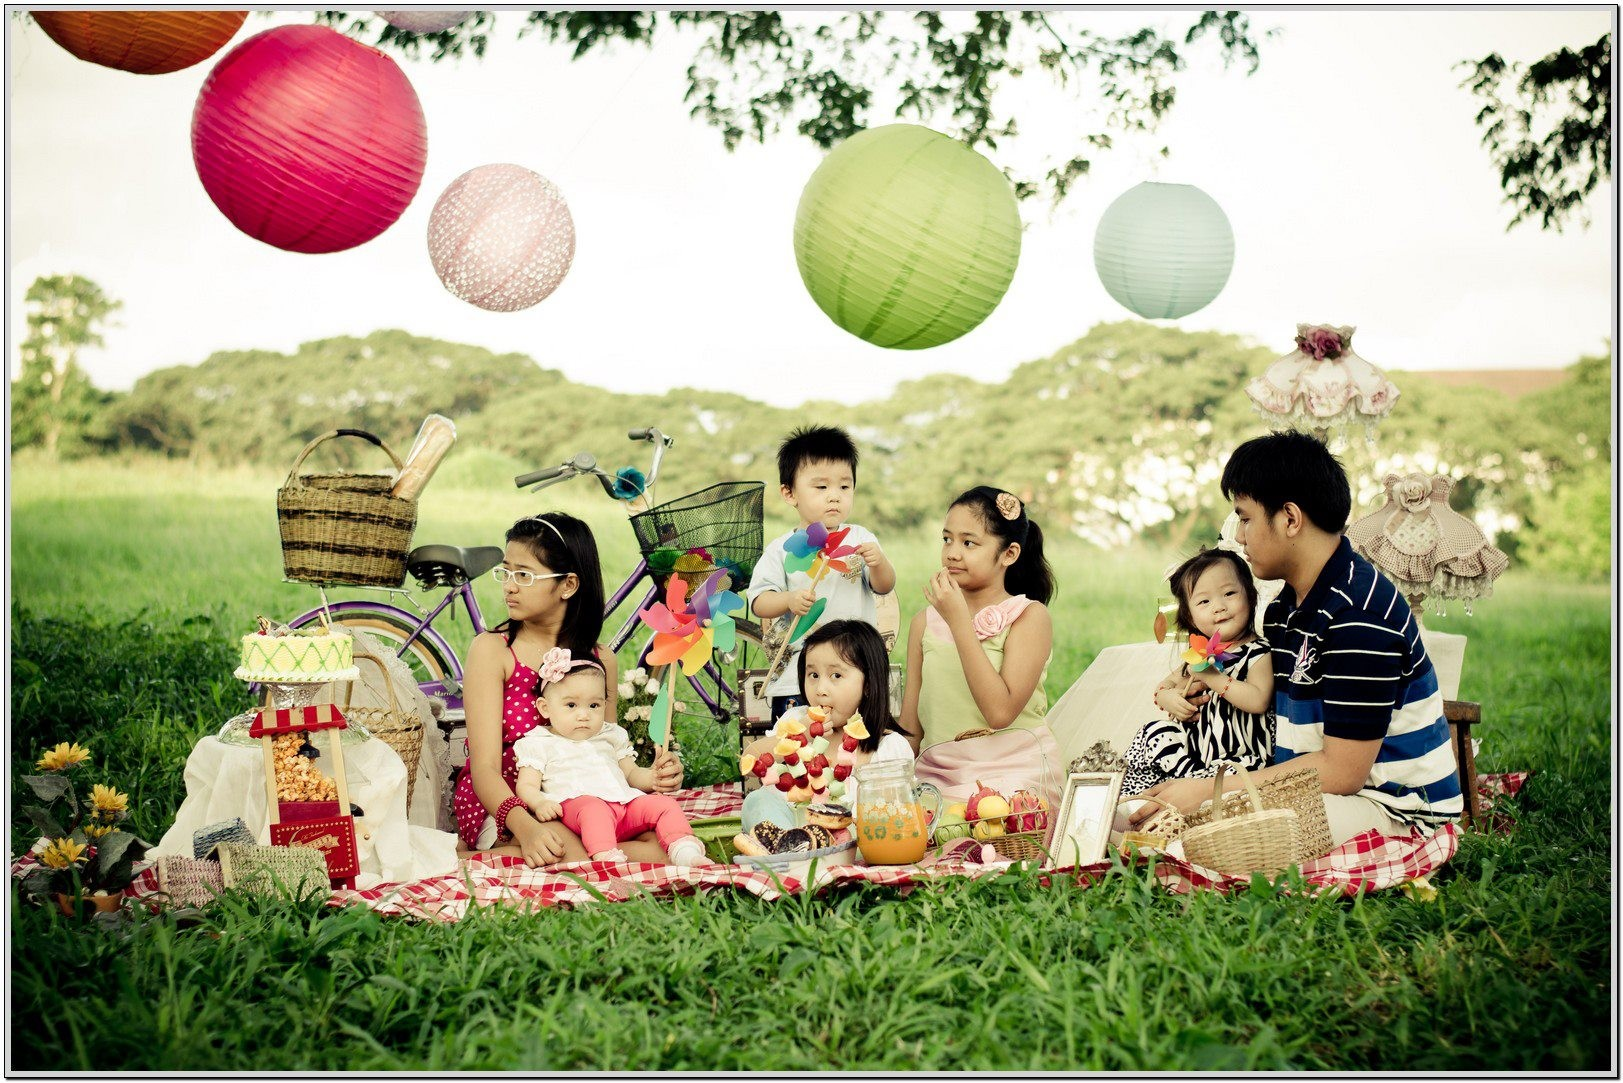 go-out-for-a-family-picnic